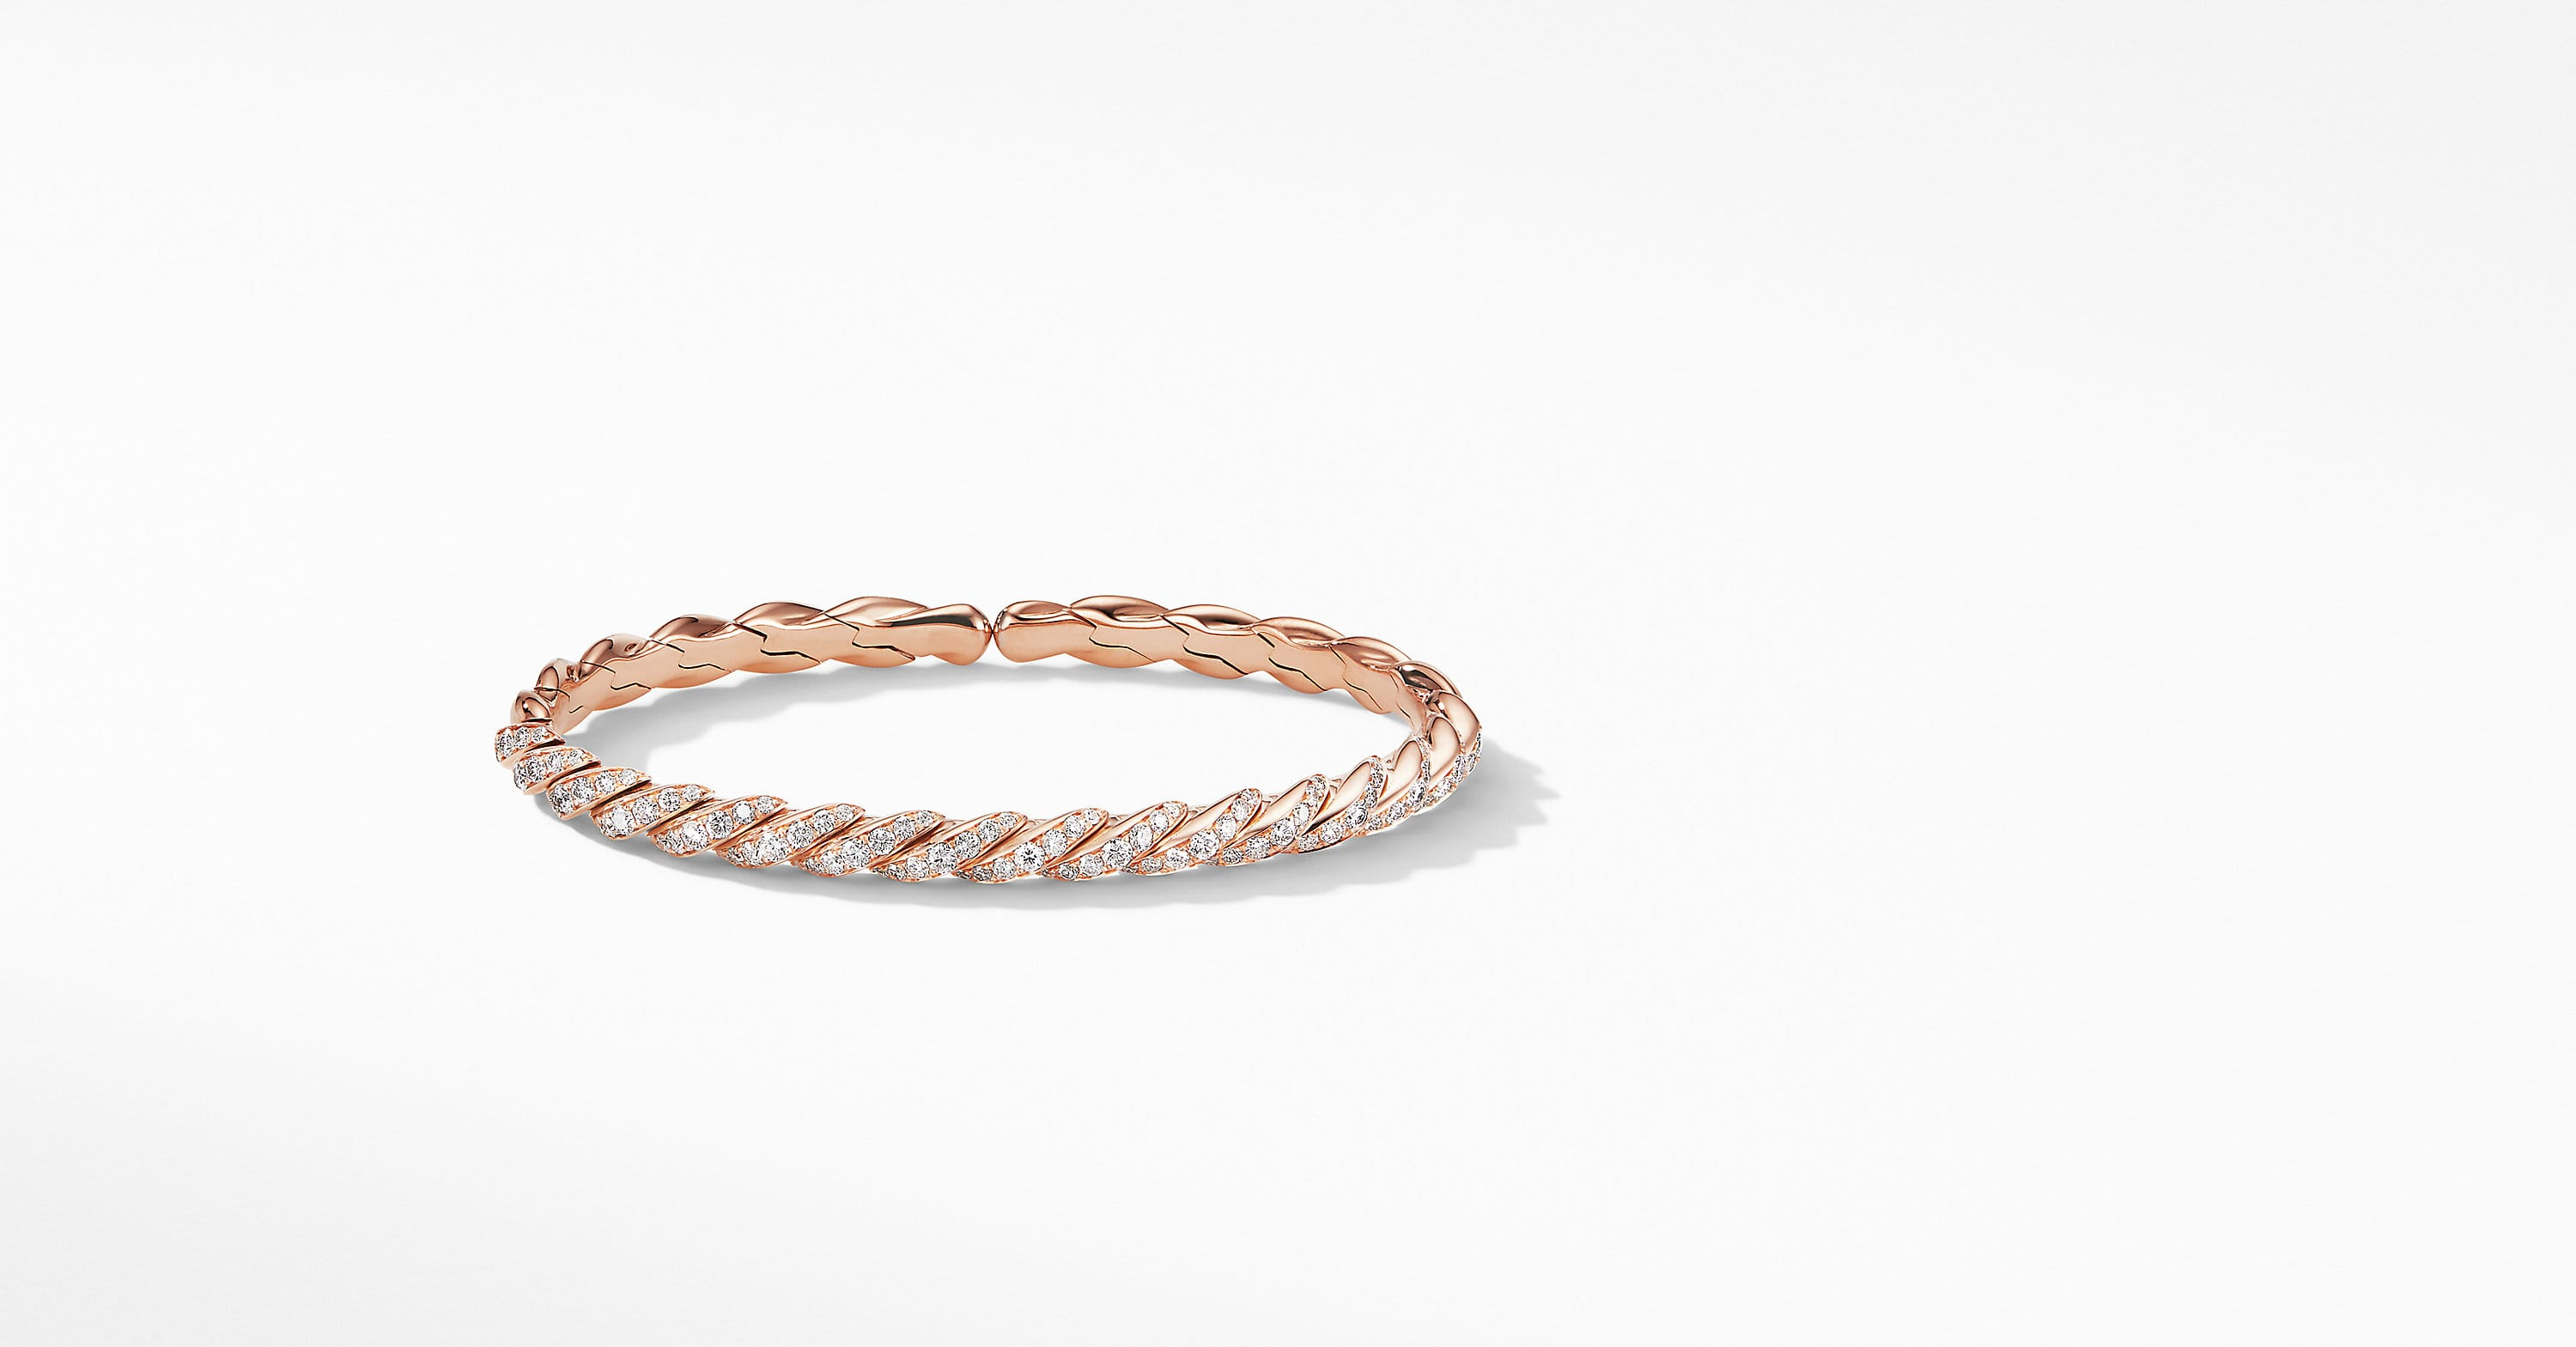 Pavéflex Bracelet in 18K Rose Gold with Diamonds